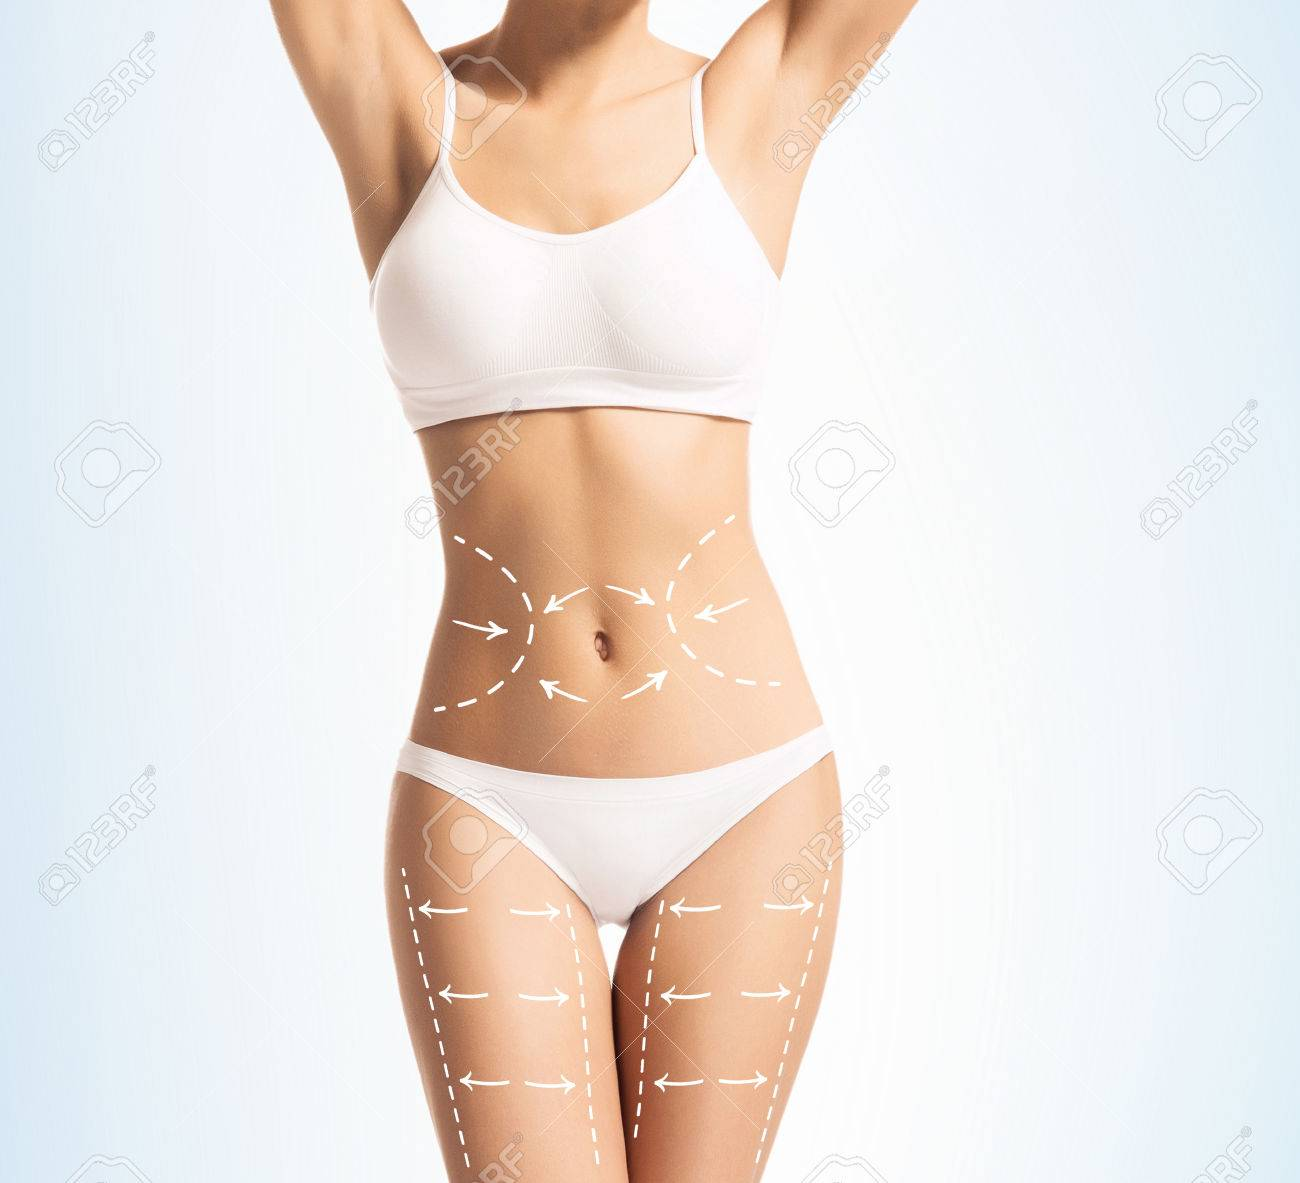 Women Slim Body In Swimwear Having Arrows Along Her Stomach And Stock Photo Picture And Royalty Free Image Image 73867254